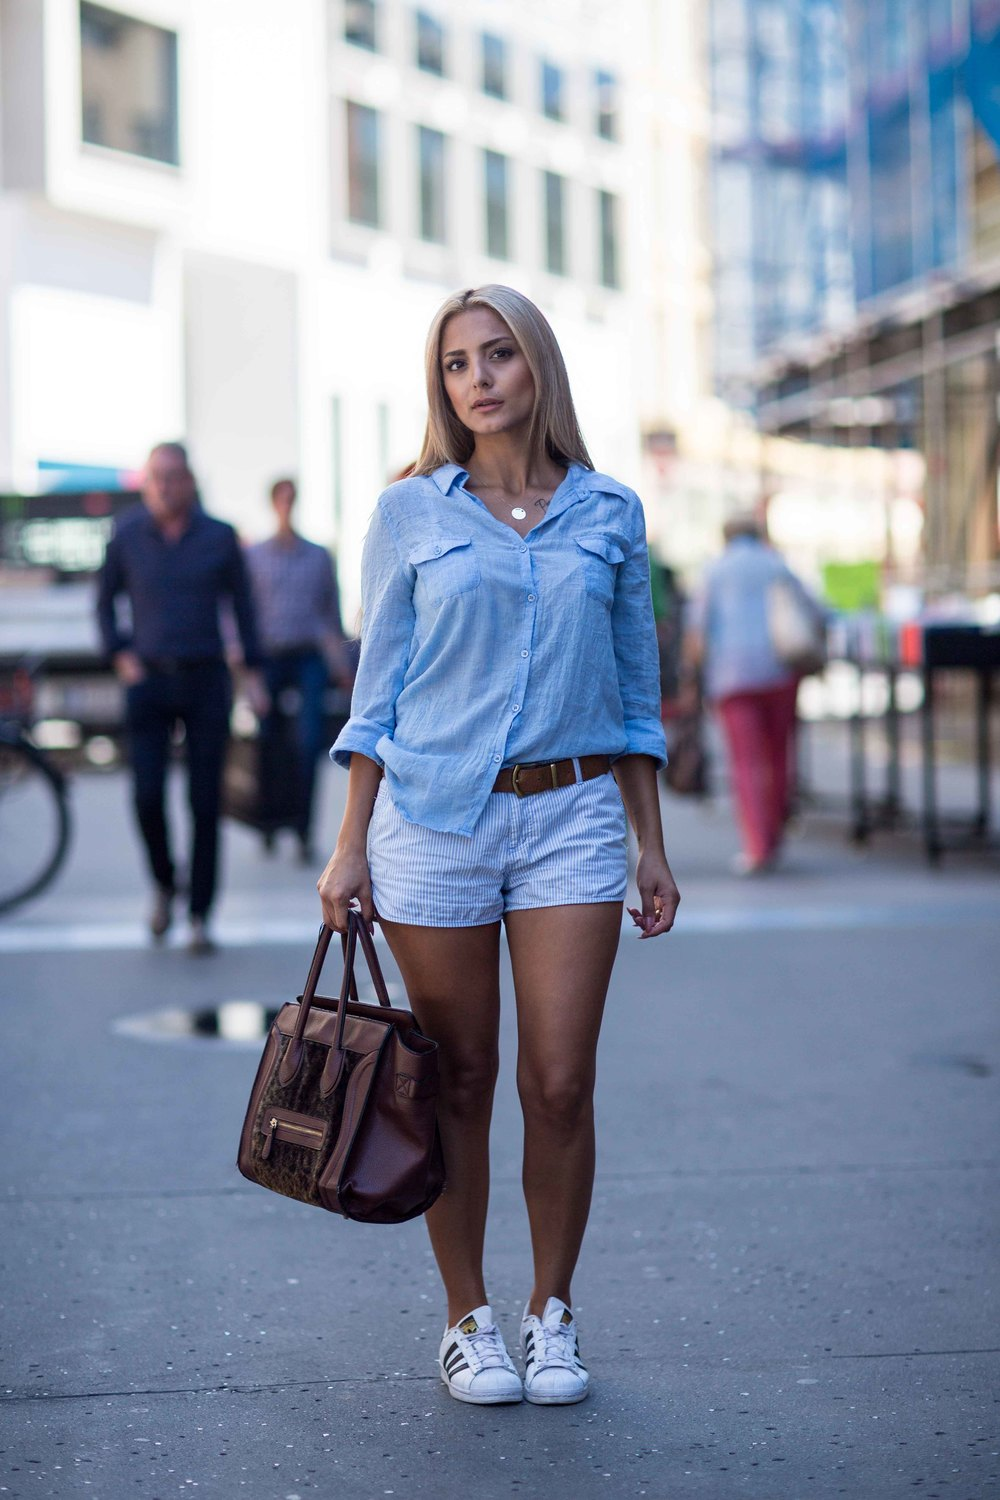 street-style-fashion-blog-innsbruck-manolya